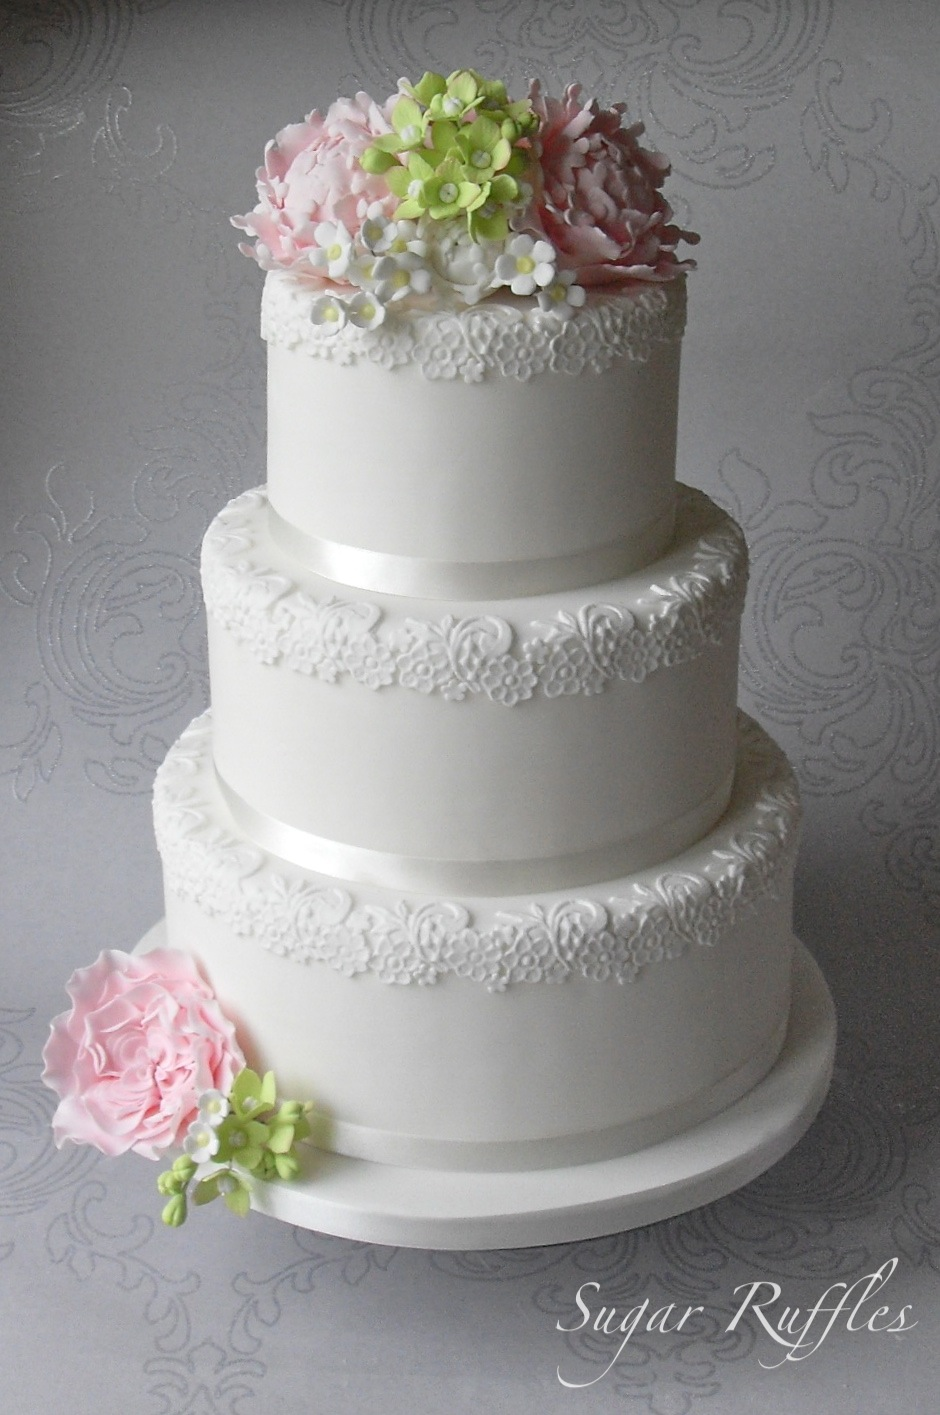 Lace Wedding Cake With Sugar Flowers